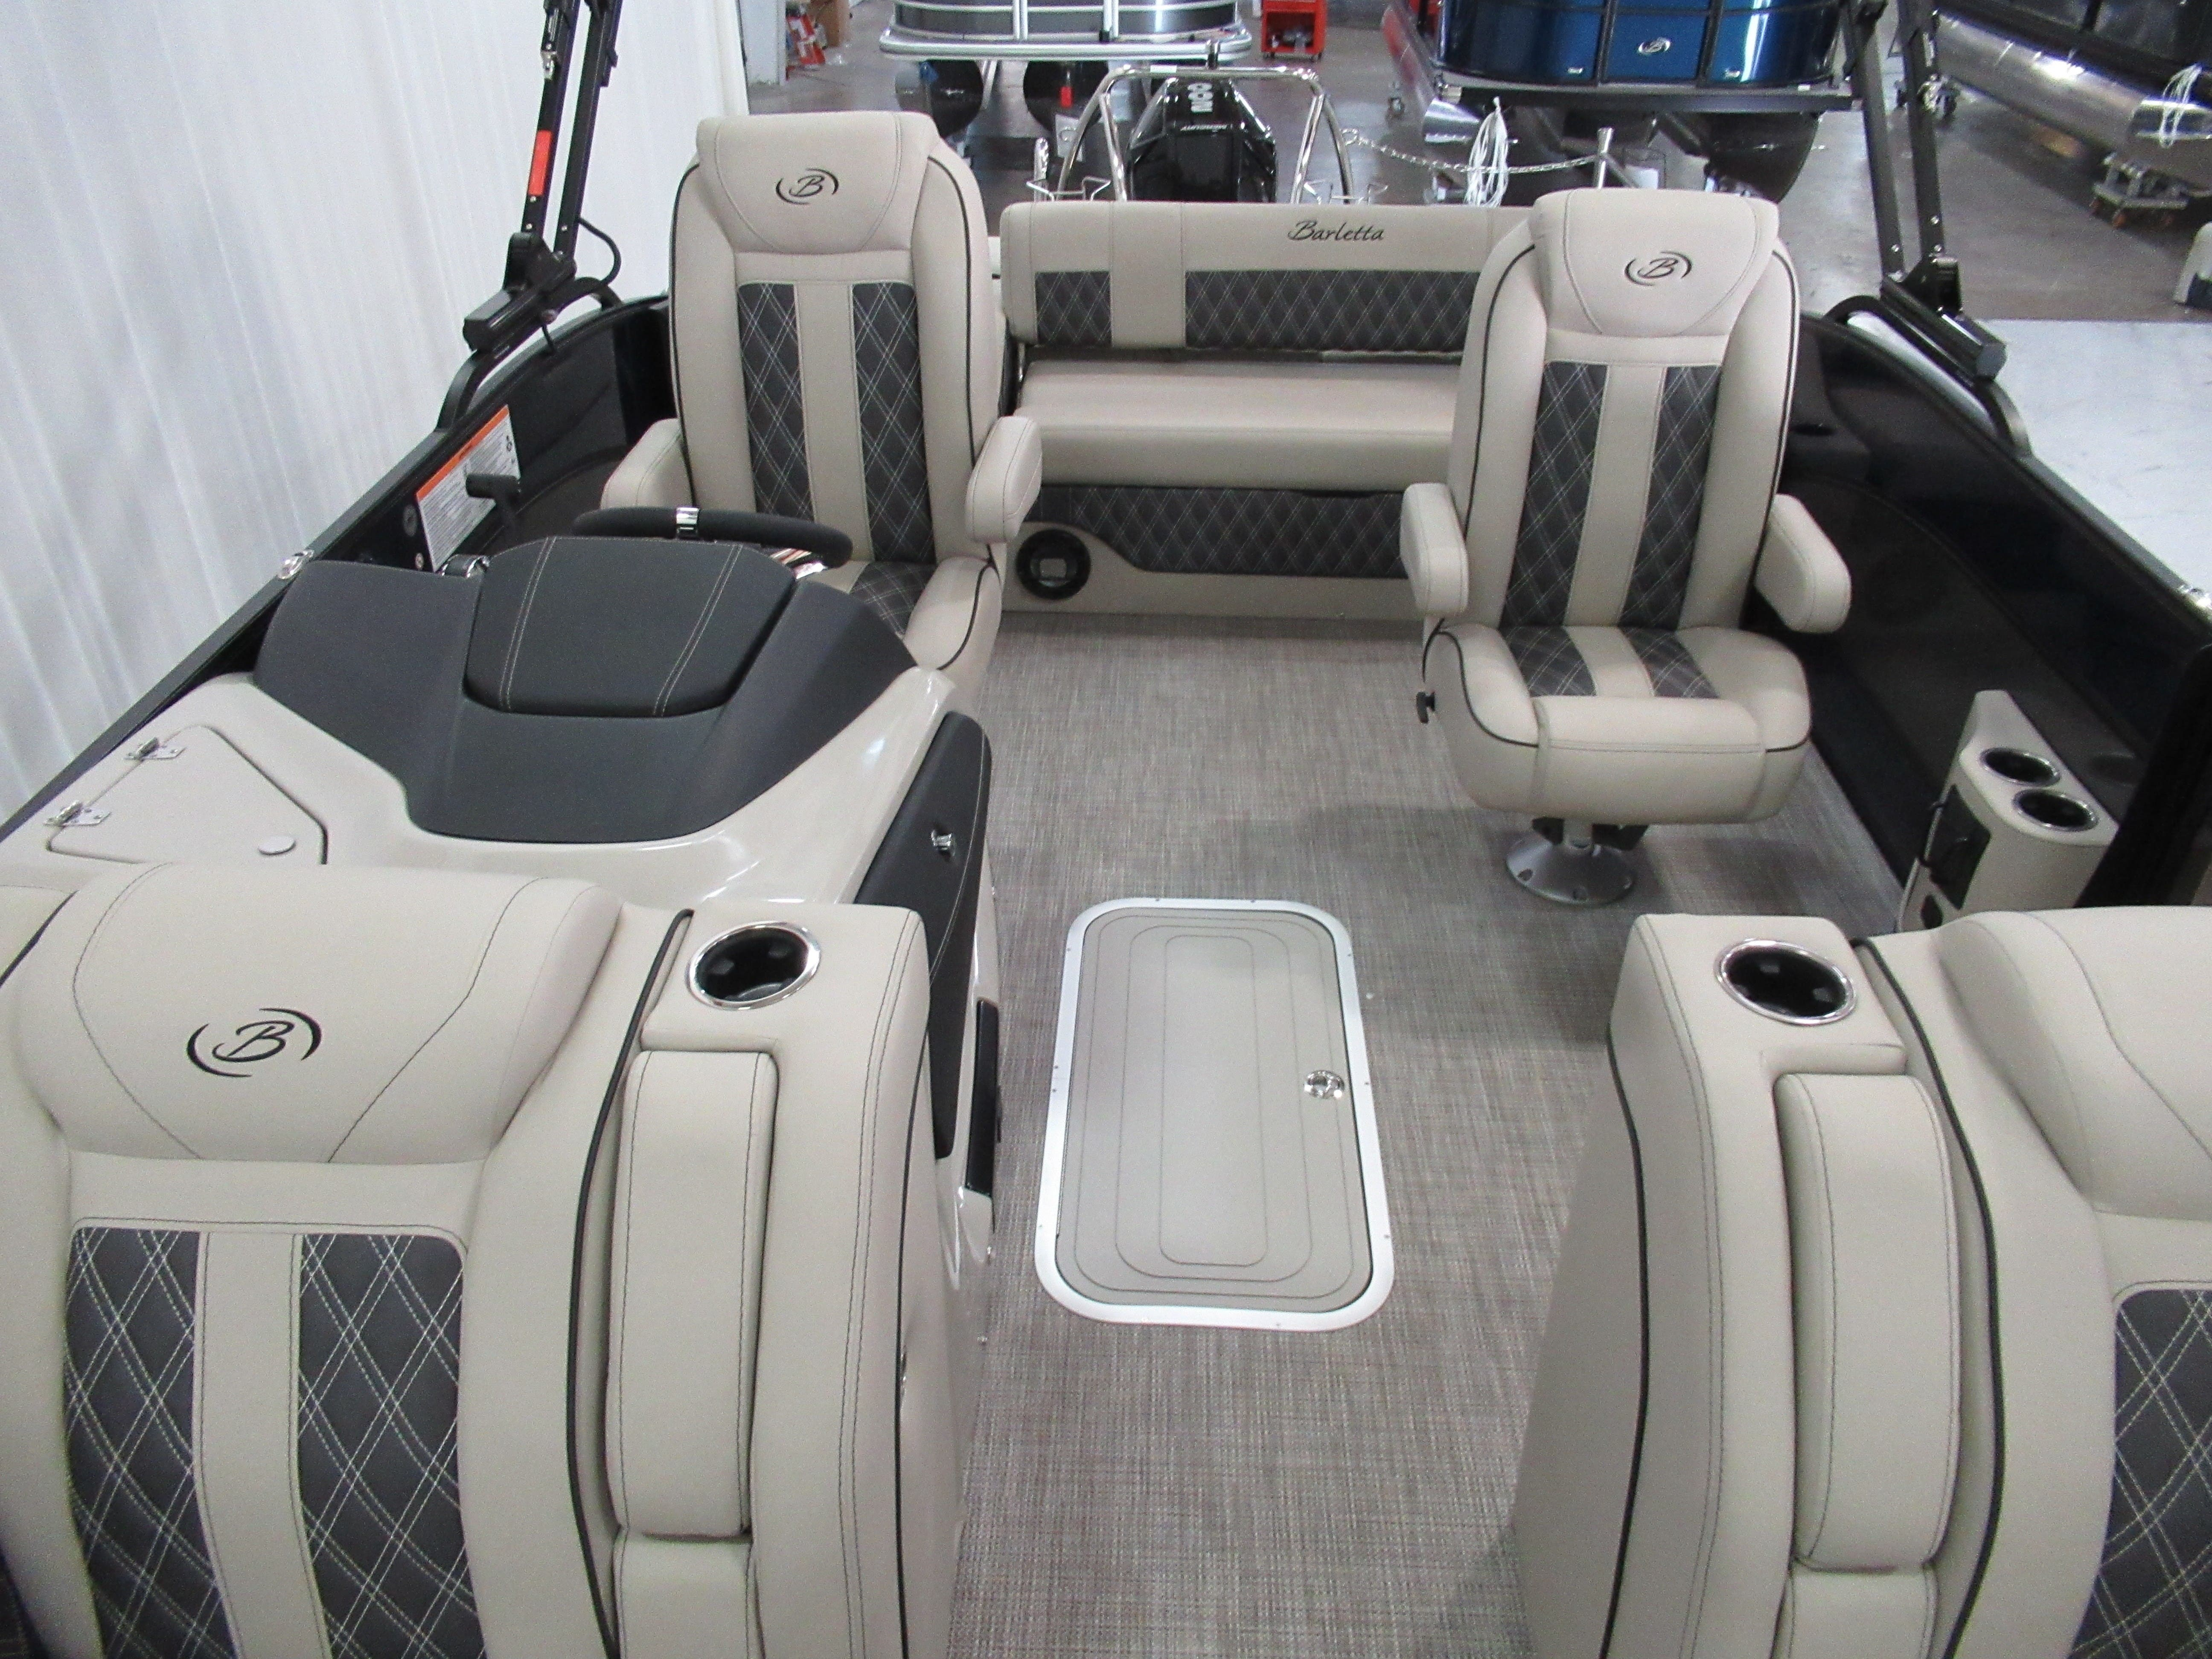 2021 Barletta boat for sale, model of the boat is L-Class & Image # 6 of 12